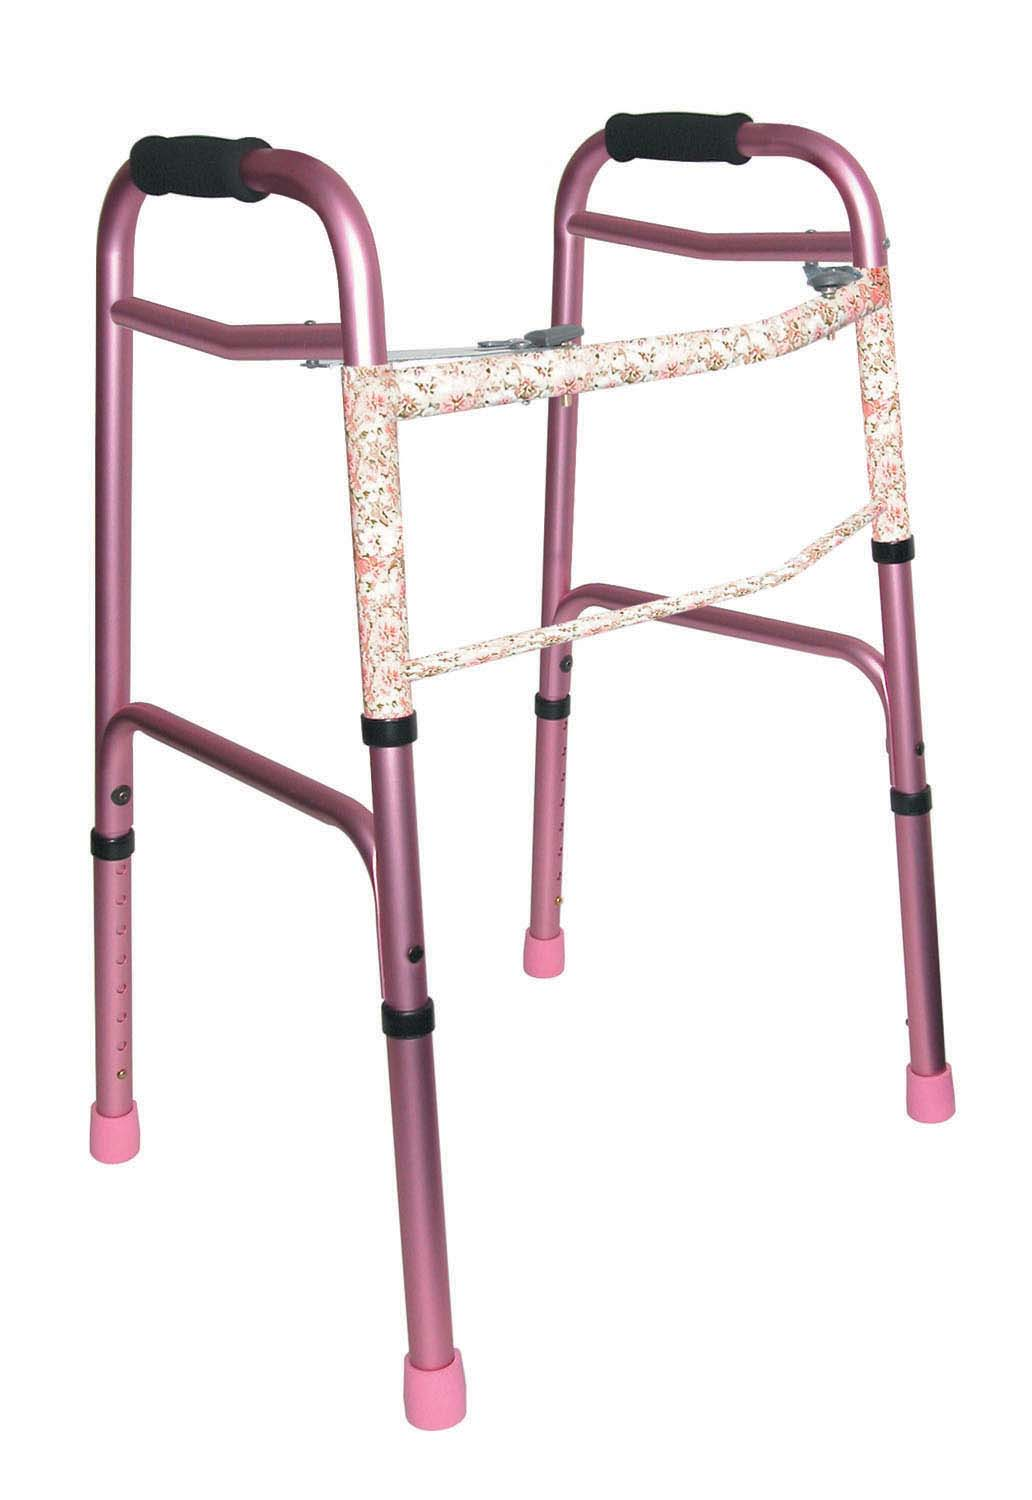 two-button-release-aluminum-folding-walkers-w-rubber-tips-pink-2-carton-500-1044-0900-lr.jpg